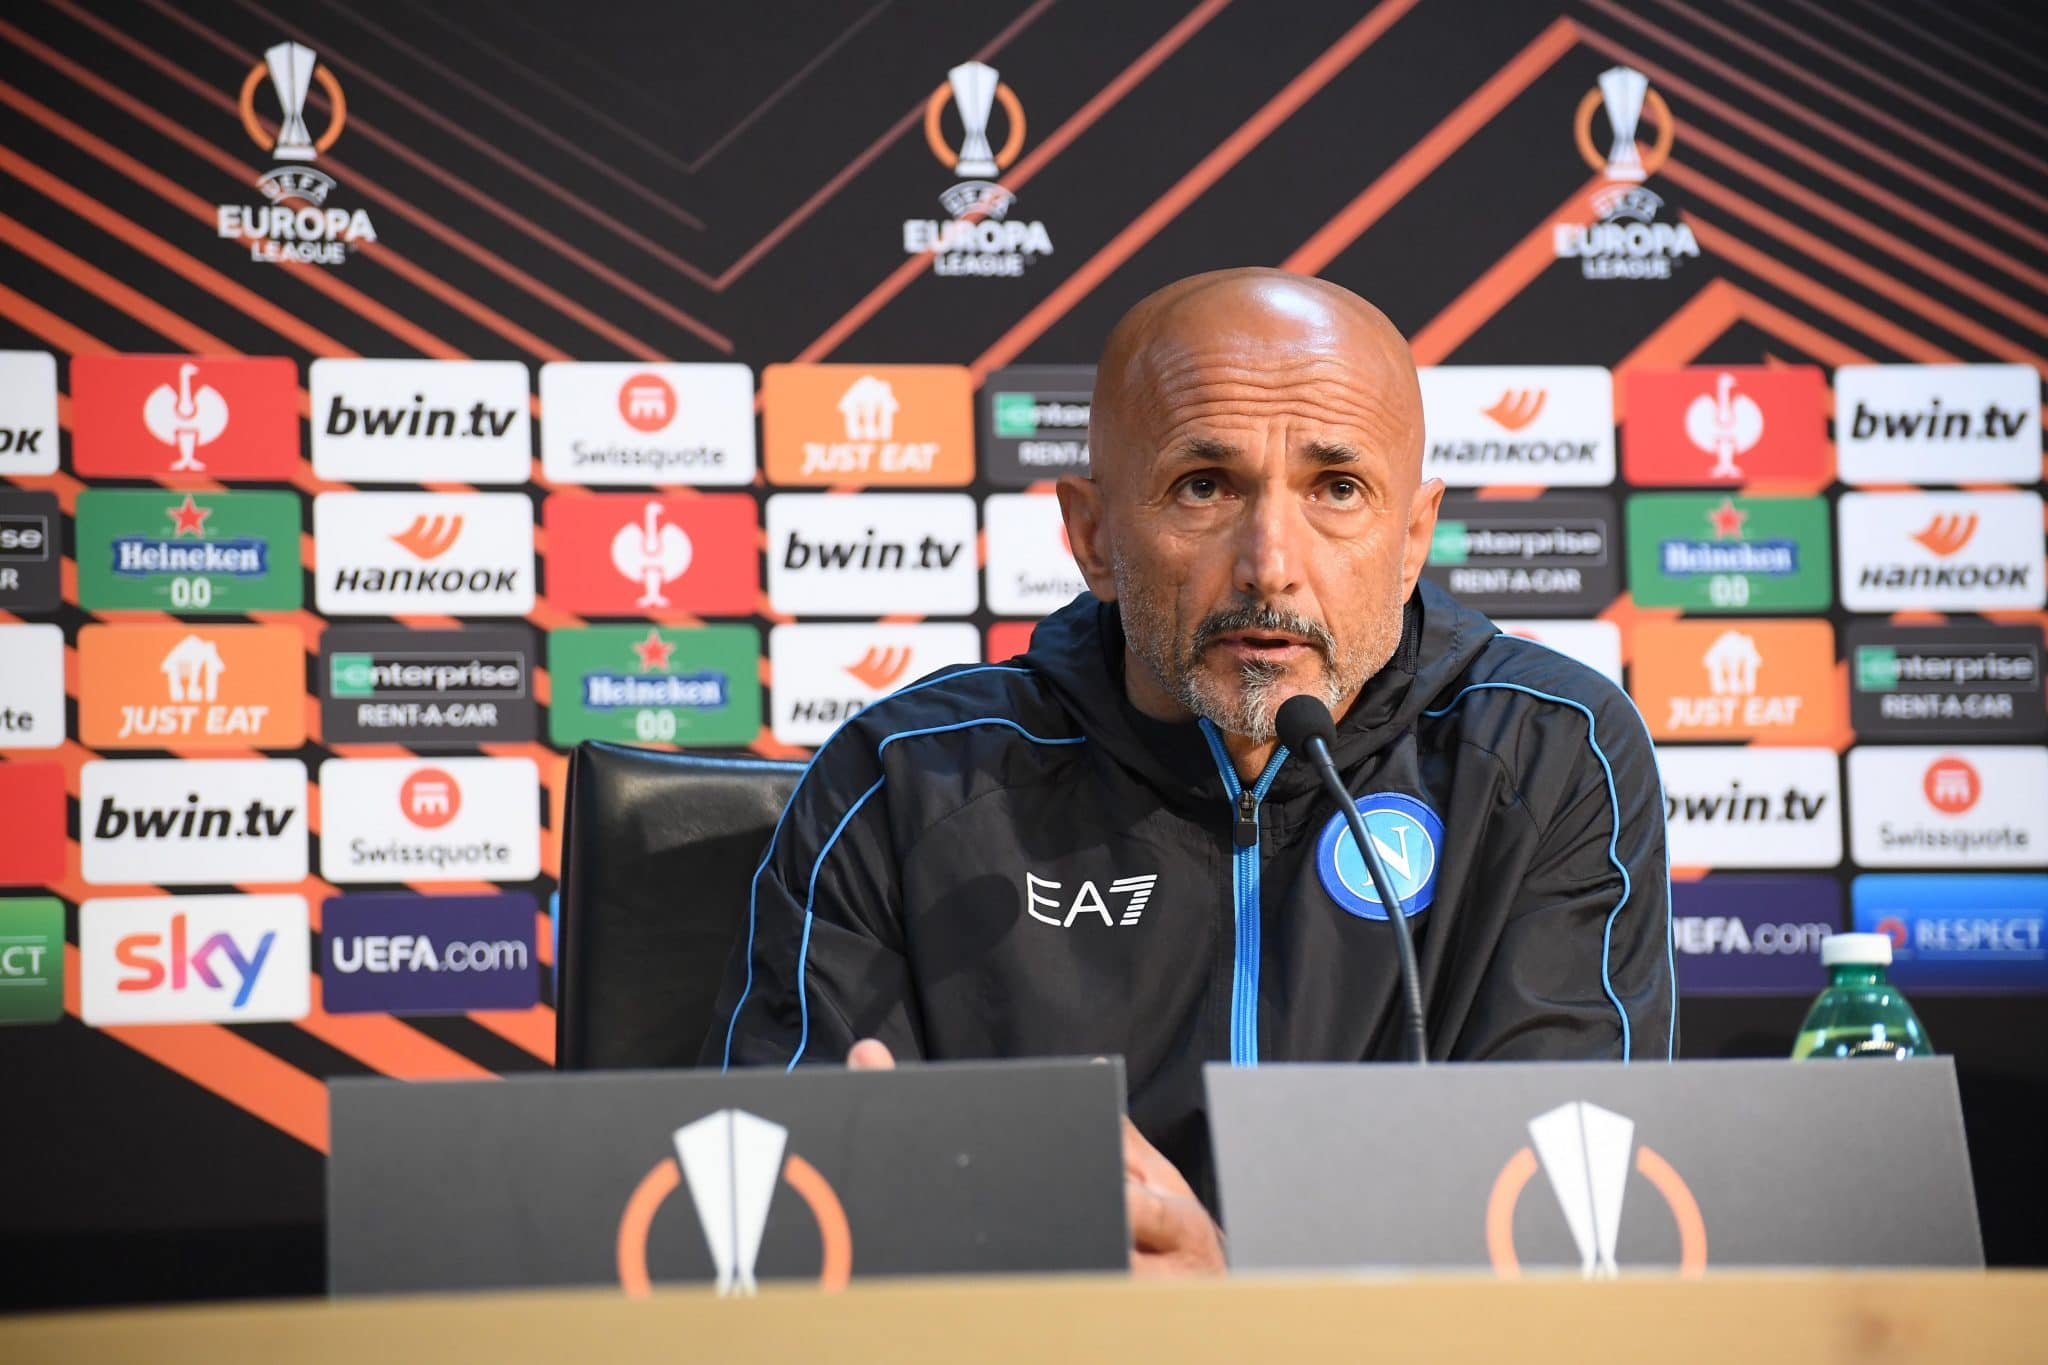 NAPLES, ITALY - OCTOBER 20: Luciano Spalletti speaks at a SSC Napoli press conference, on the eve of their UEFA Europa League Group C match against Legia Warszawa, on October 20, 2021 in Naples, Italy. (Photo by SSC NAPOLI/SSC NAPOLI via Getty Images)